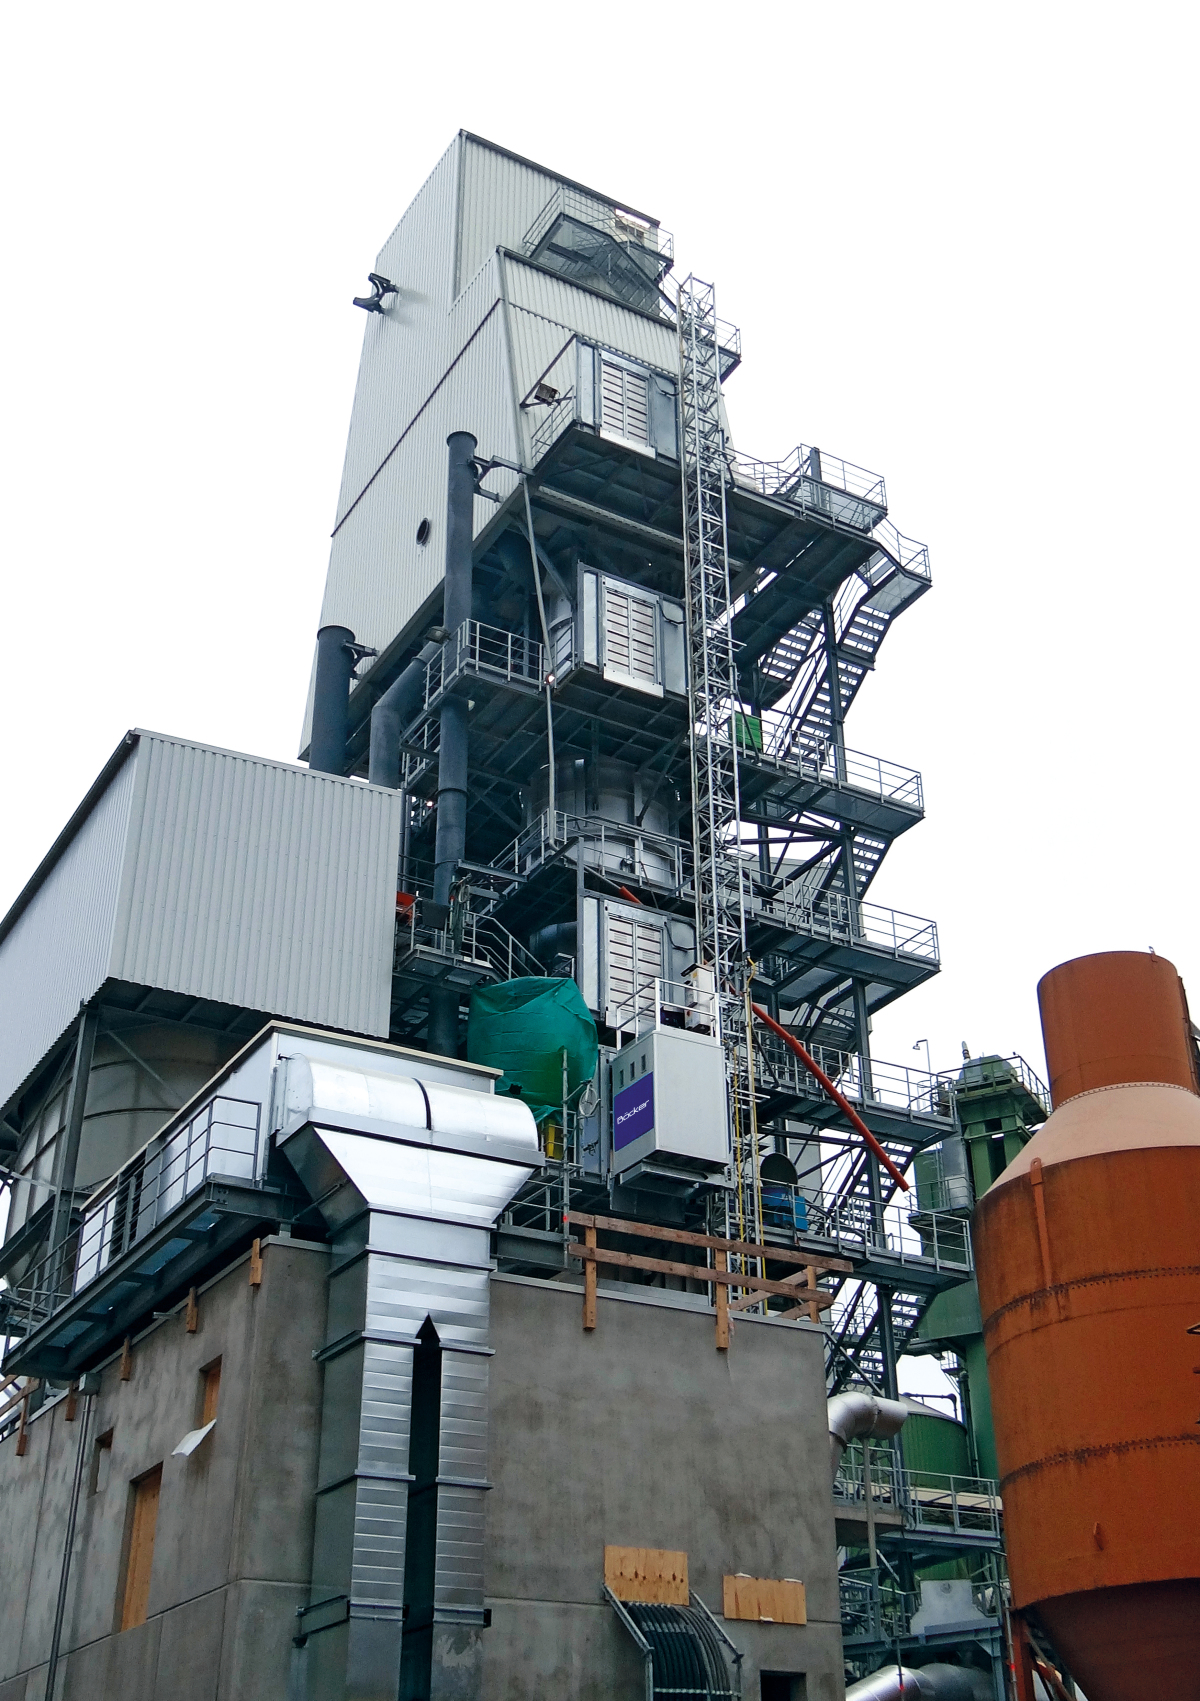 Böcker Werne Peak Performance For The Lime Kiln Service Lift On Constant Duty